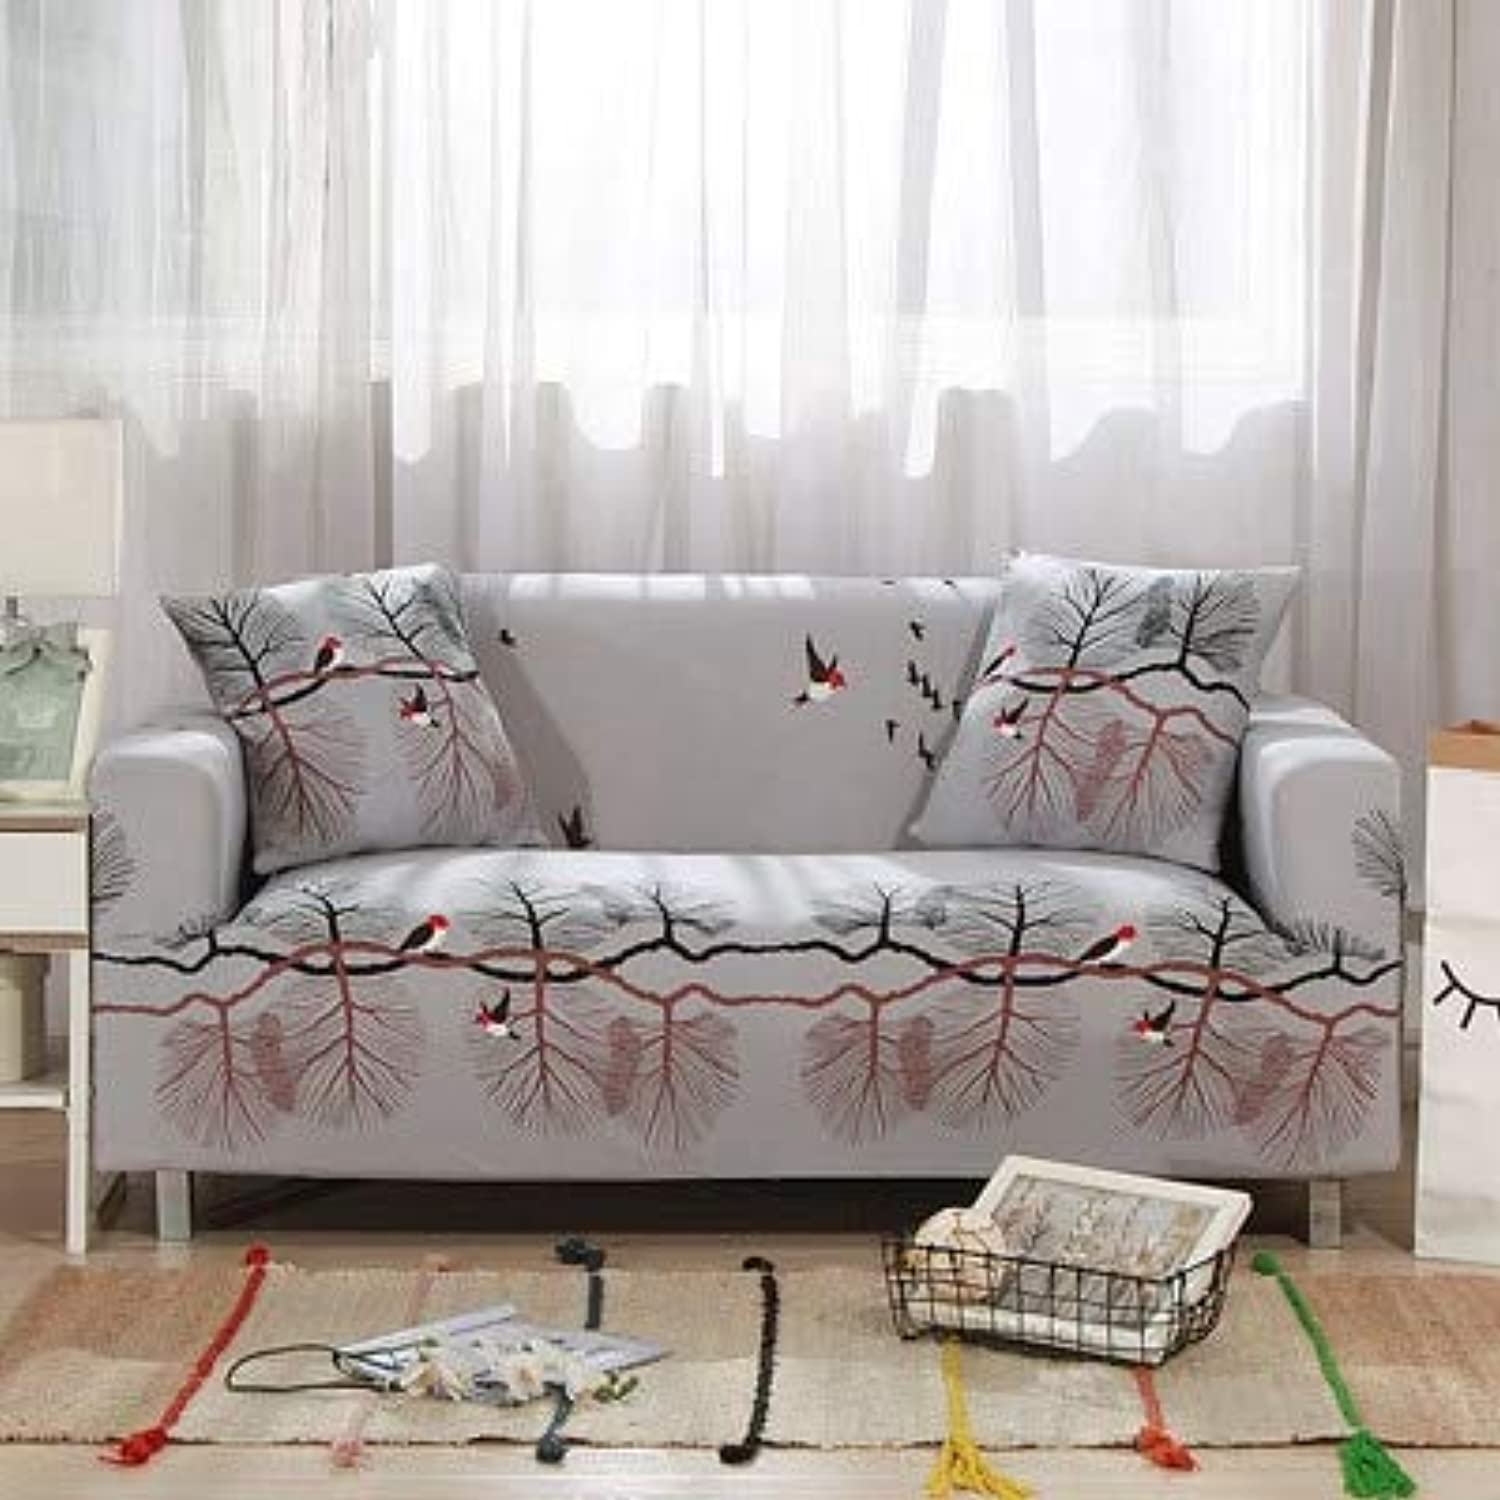 Leaves Pattern Sofa Covers Elastic Stretch Universal Sectional Throw Couch Corner Cover Cases for Furniture Armchairs Home Deco   18, Two seat Sofa